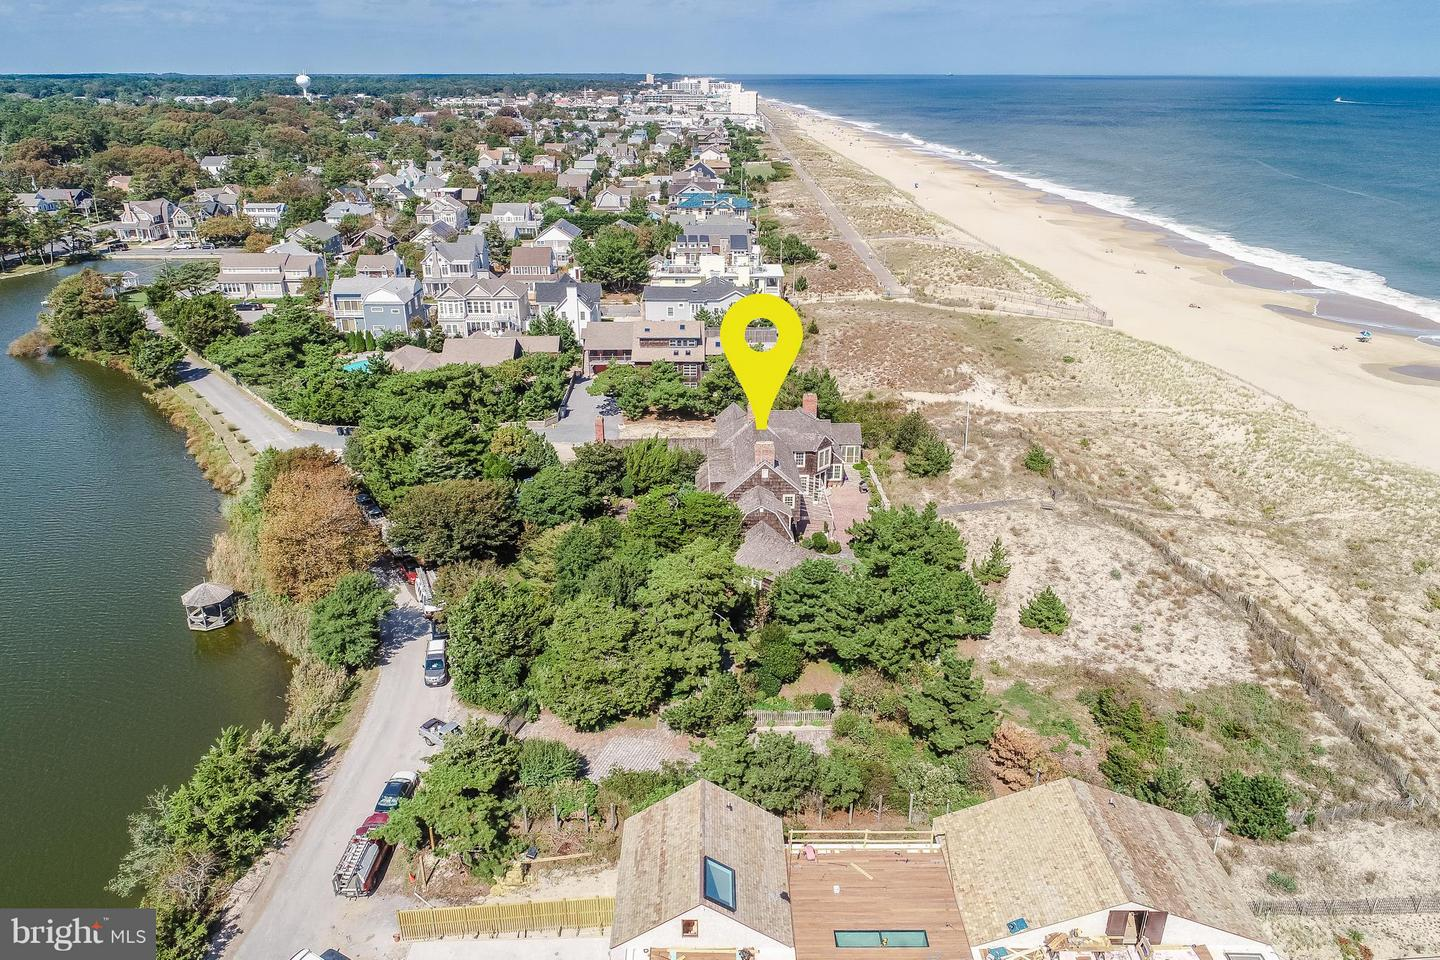 DESU129744-301308786277-2019-01-31-13-27-54 2 Penn St | Rehoboth Beach, DE Real Estate For Sale | MLS# Desu129744  - Rehoboth Beach Real Estate - Bryce Lingo and Shaun Tull REALTORS, Rehoboth Beach, Delaware